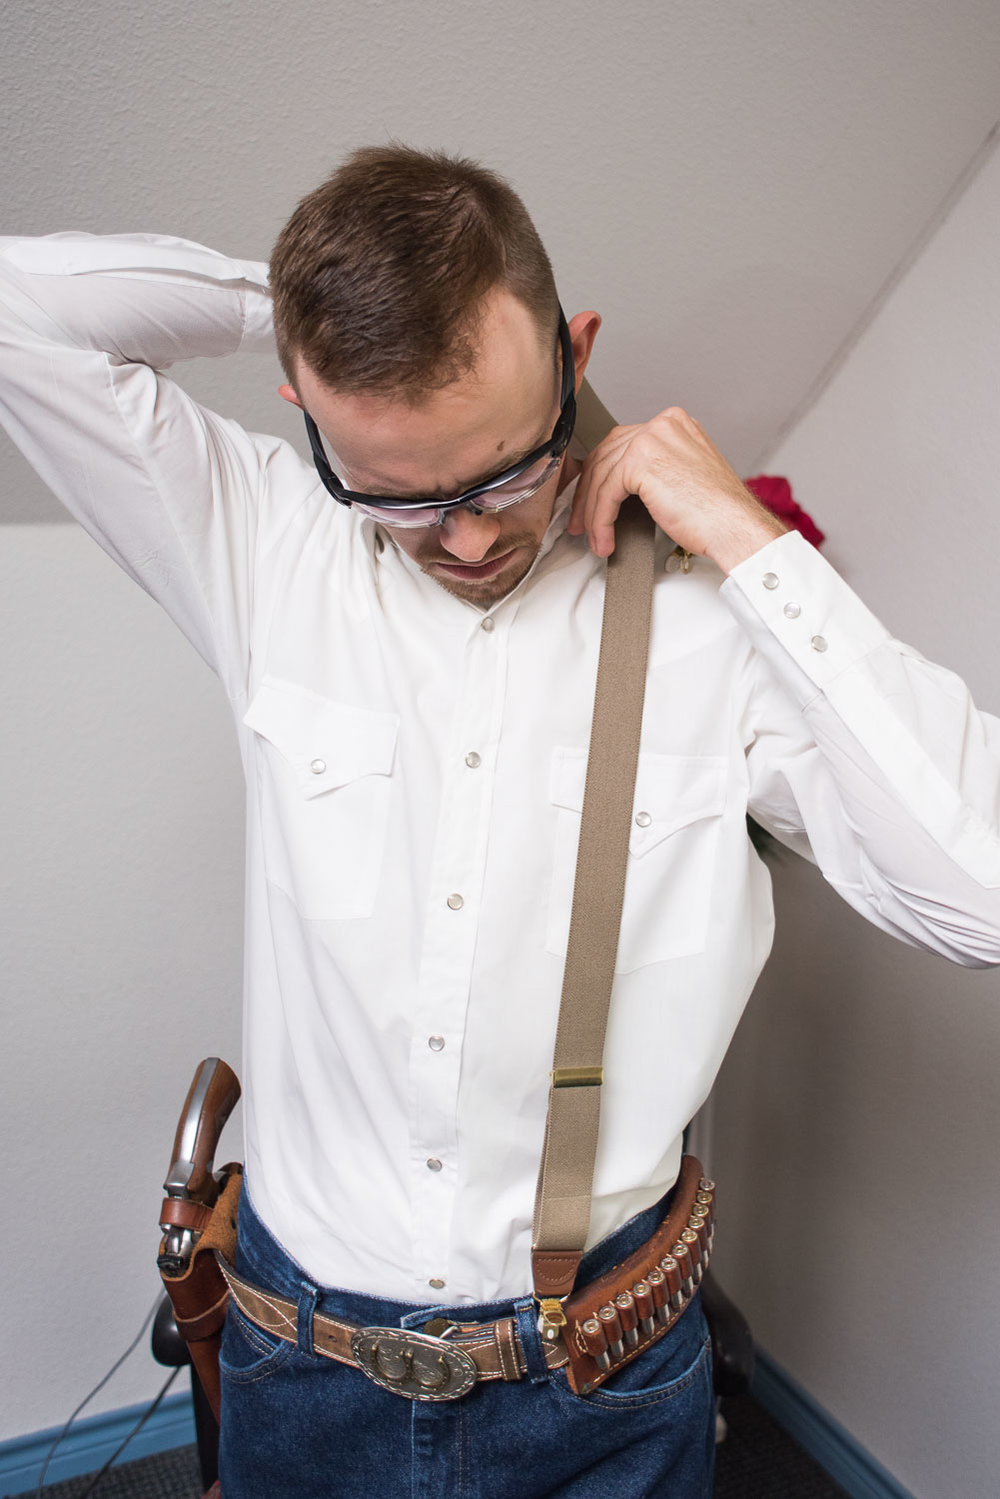 6 Groom putting on suspenders.jpg